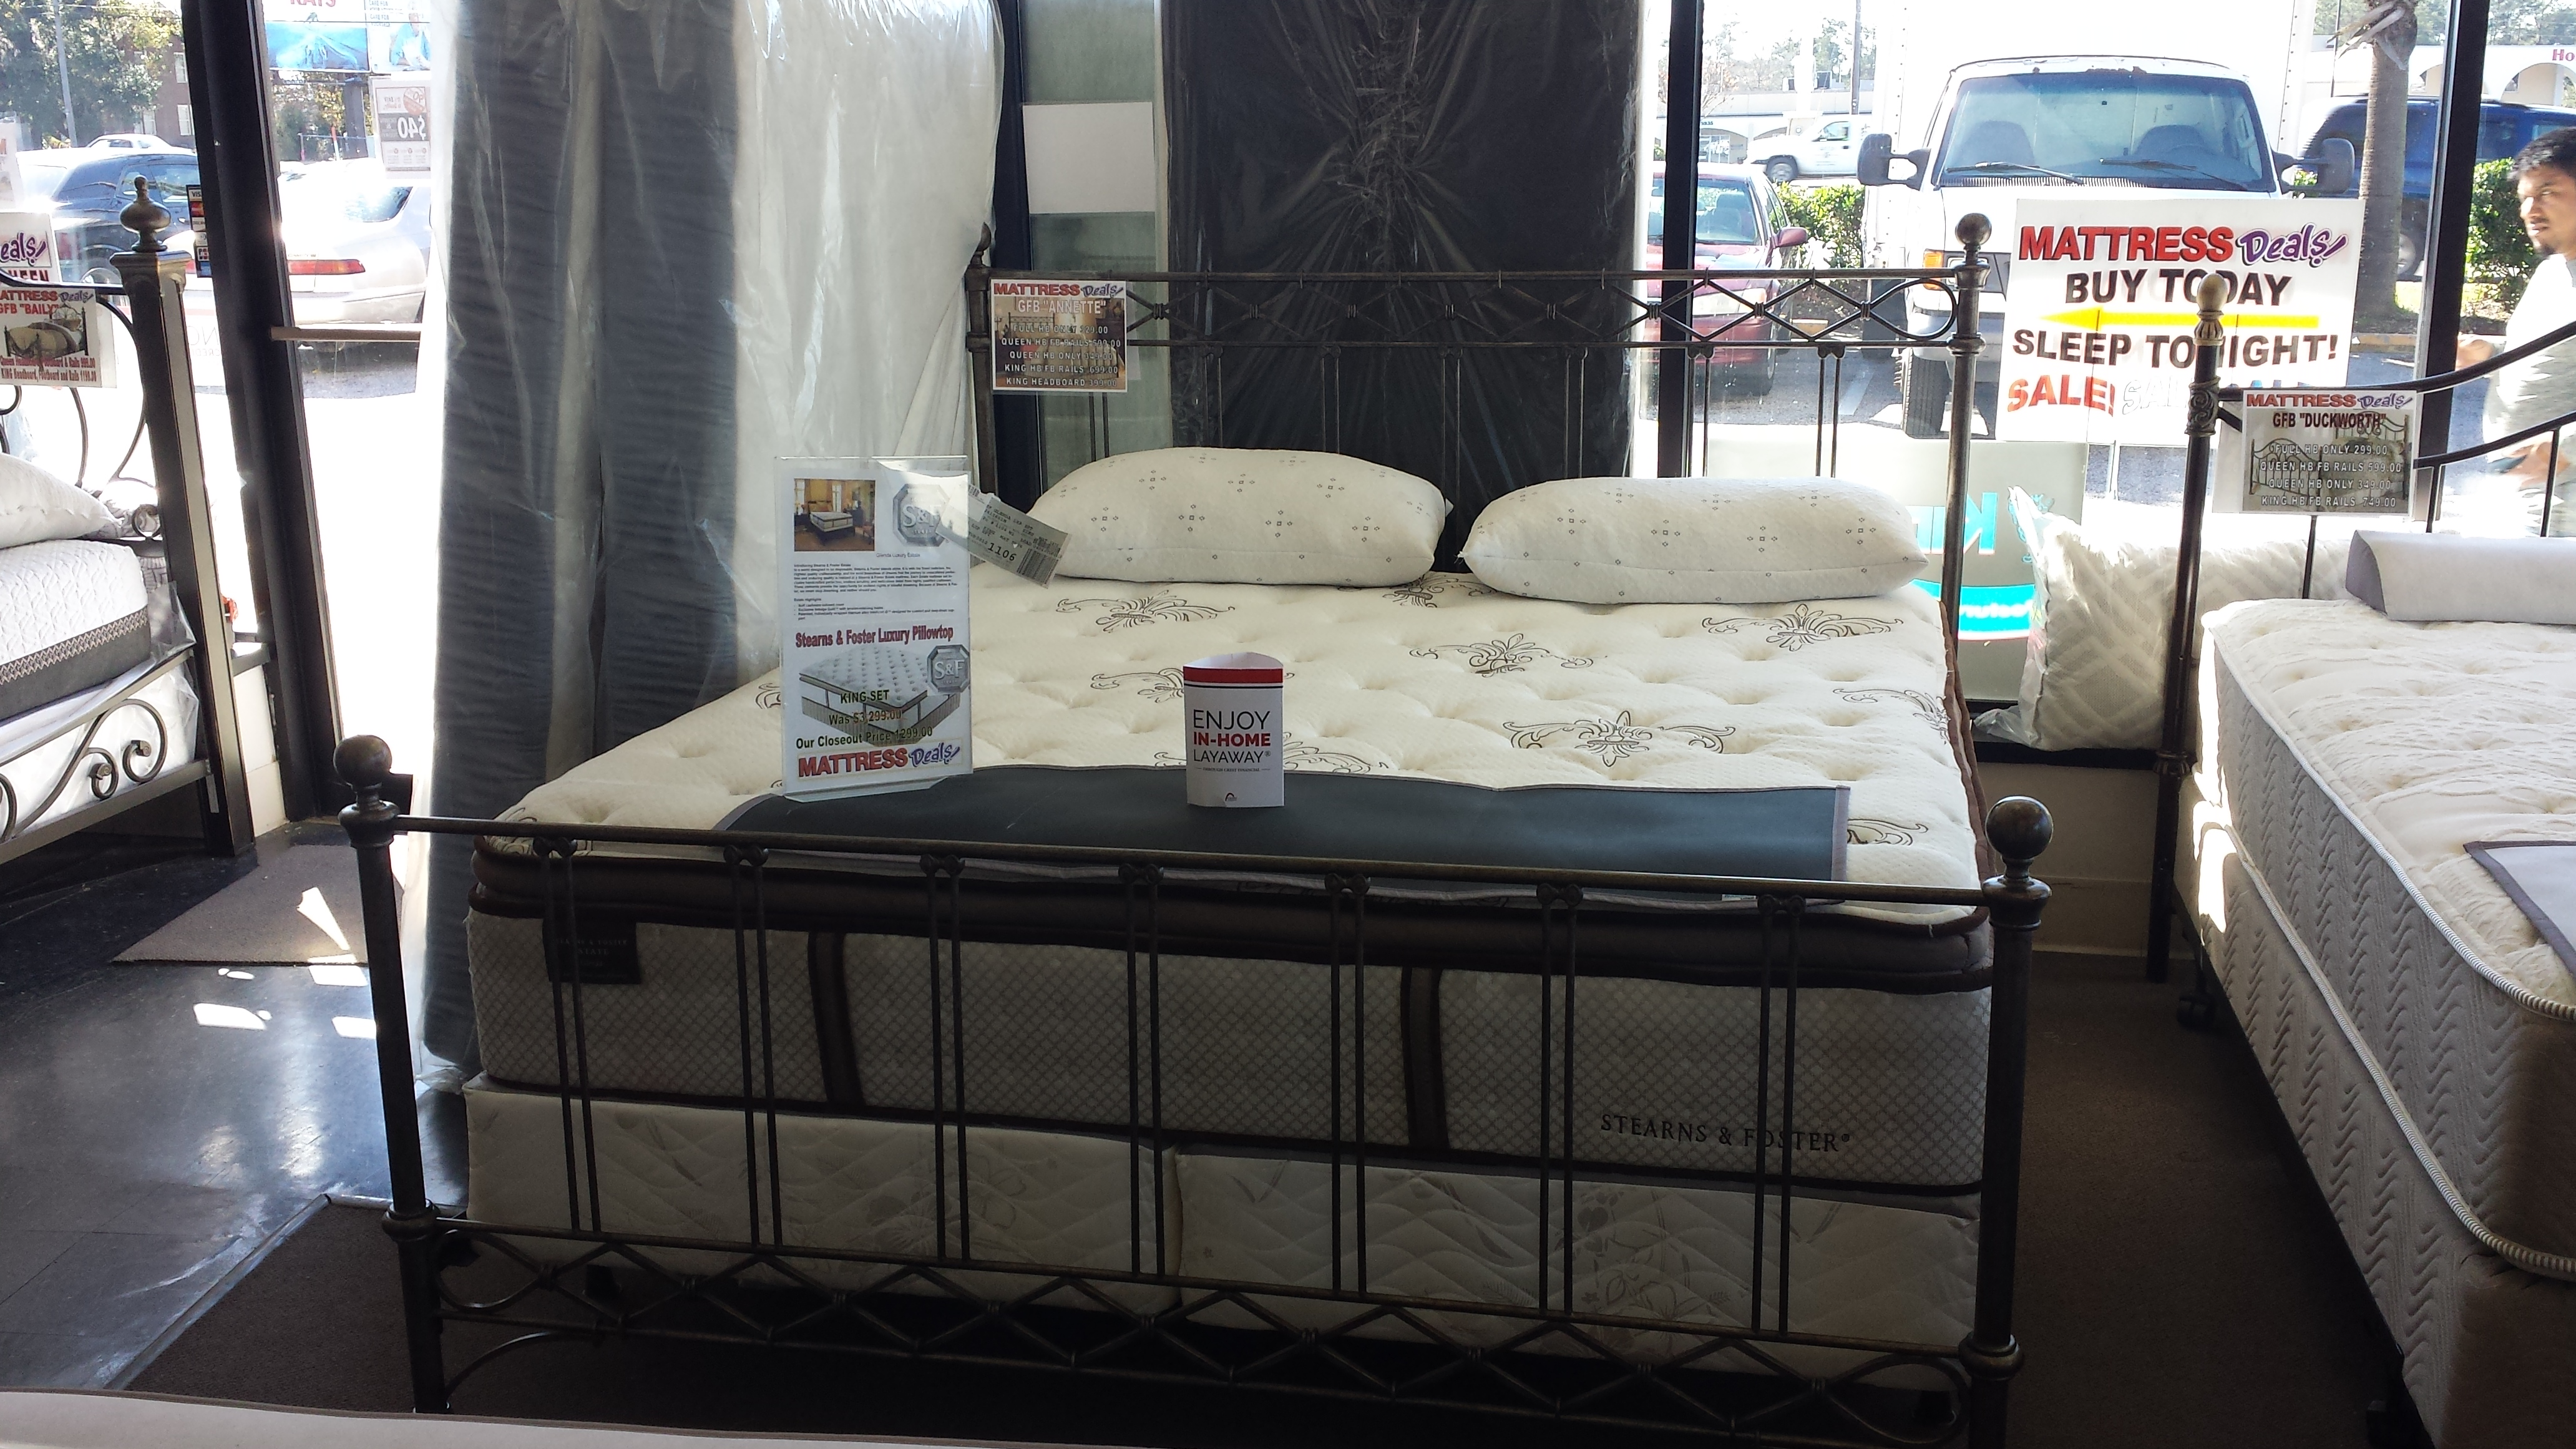 Mattress Deals image 58